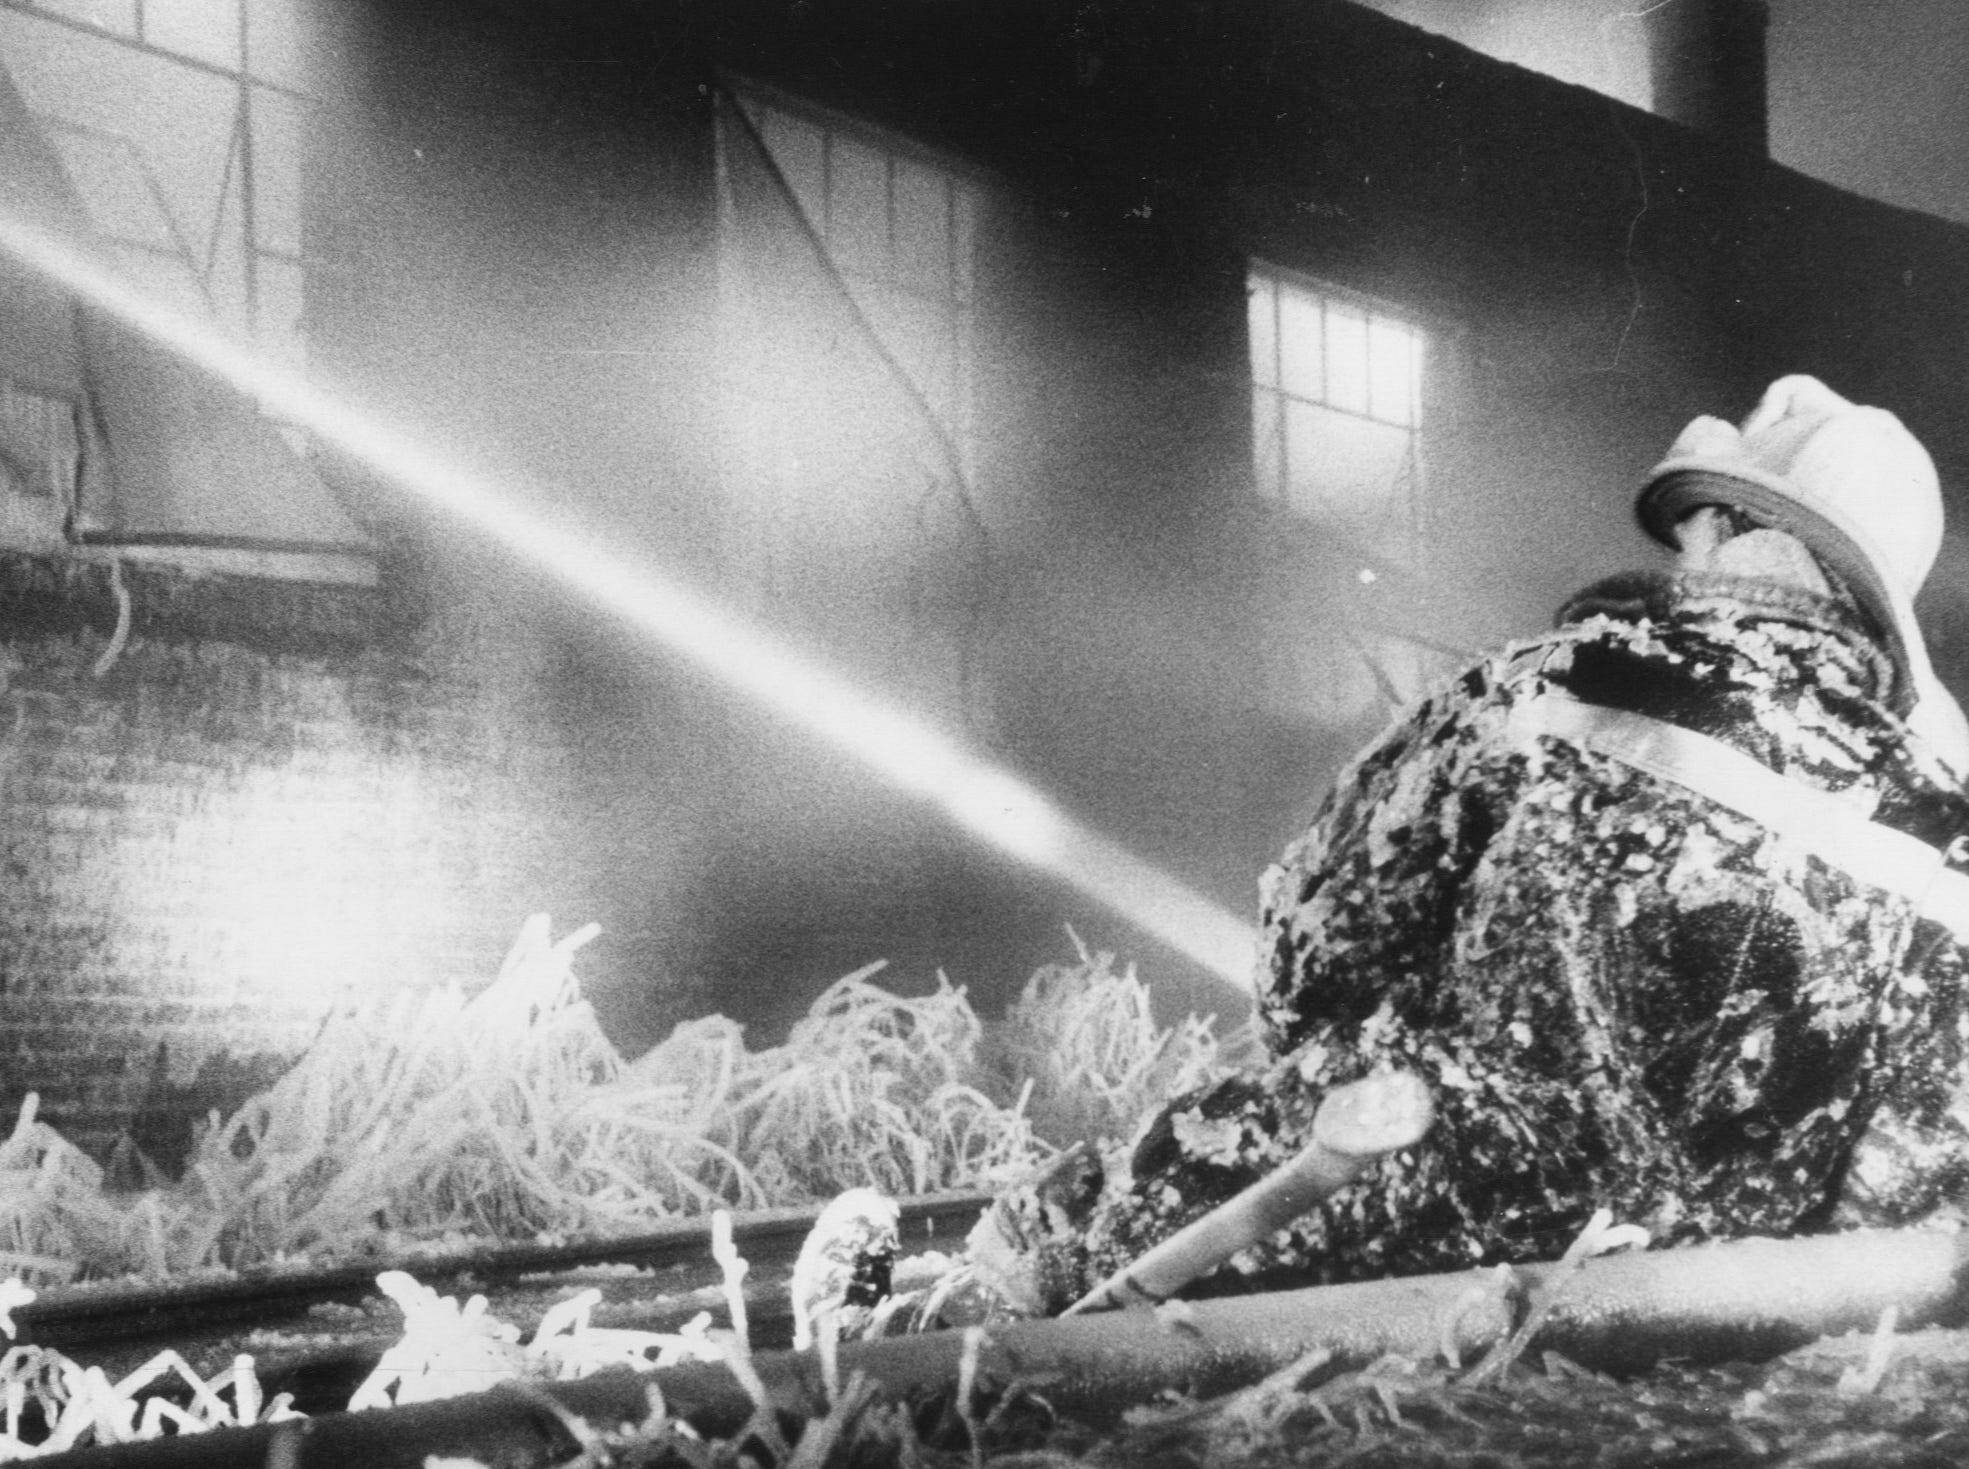 An ice-coated Louisville fireman, William Riedinger of Engine 3, braces himself against railroad ties during a three-alarm fire which destroyed the main building at Conner Manufacturing Co. last night. 